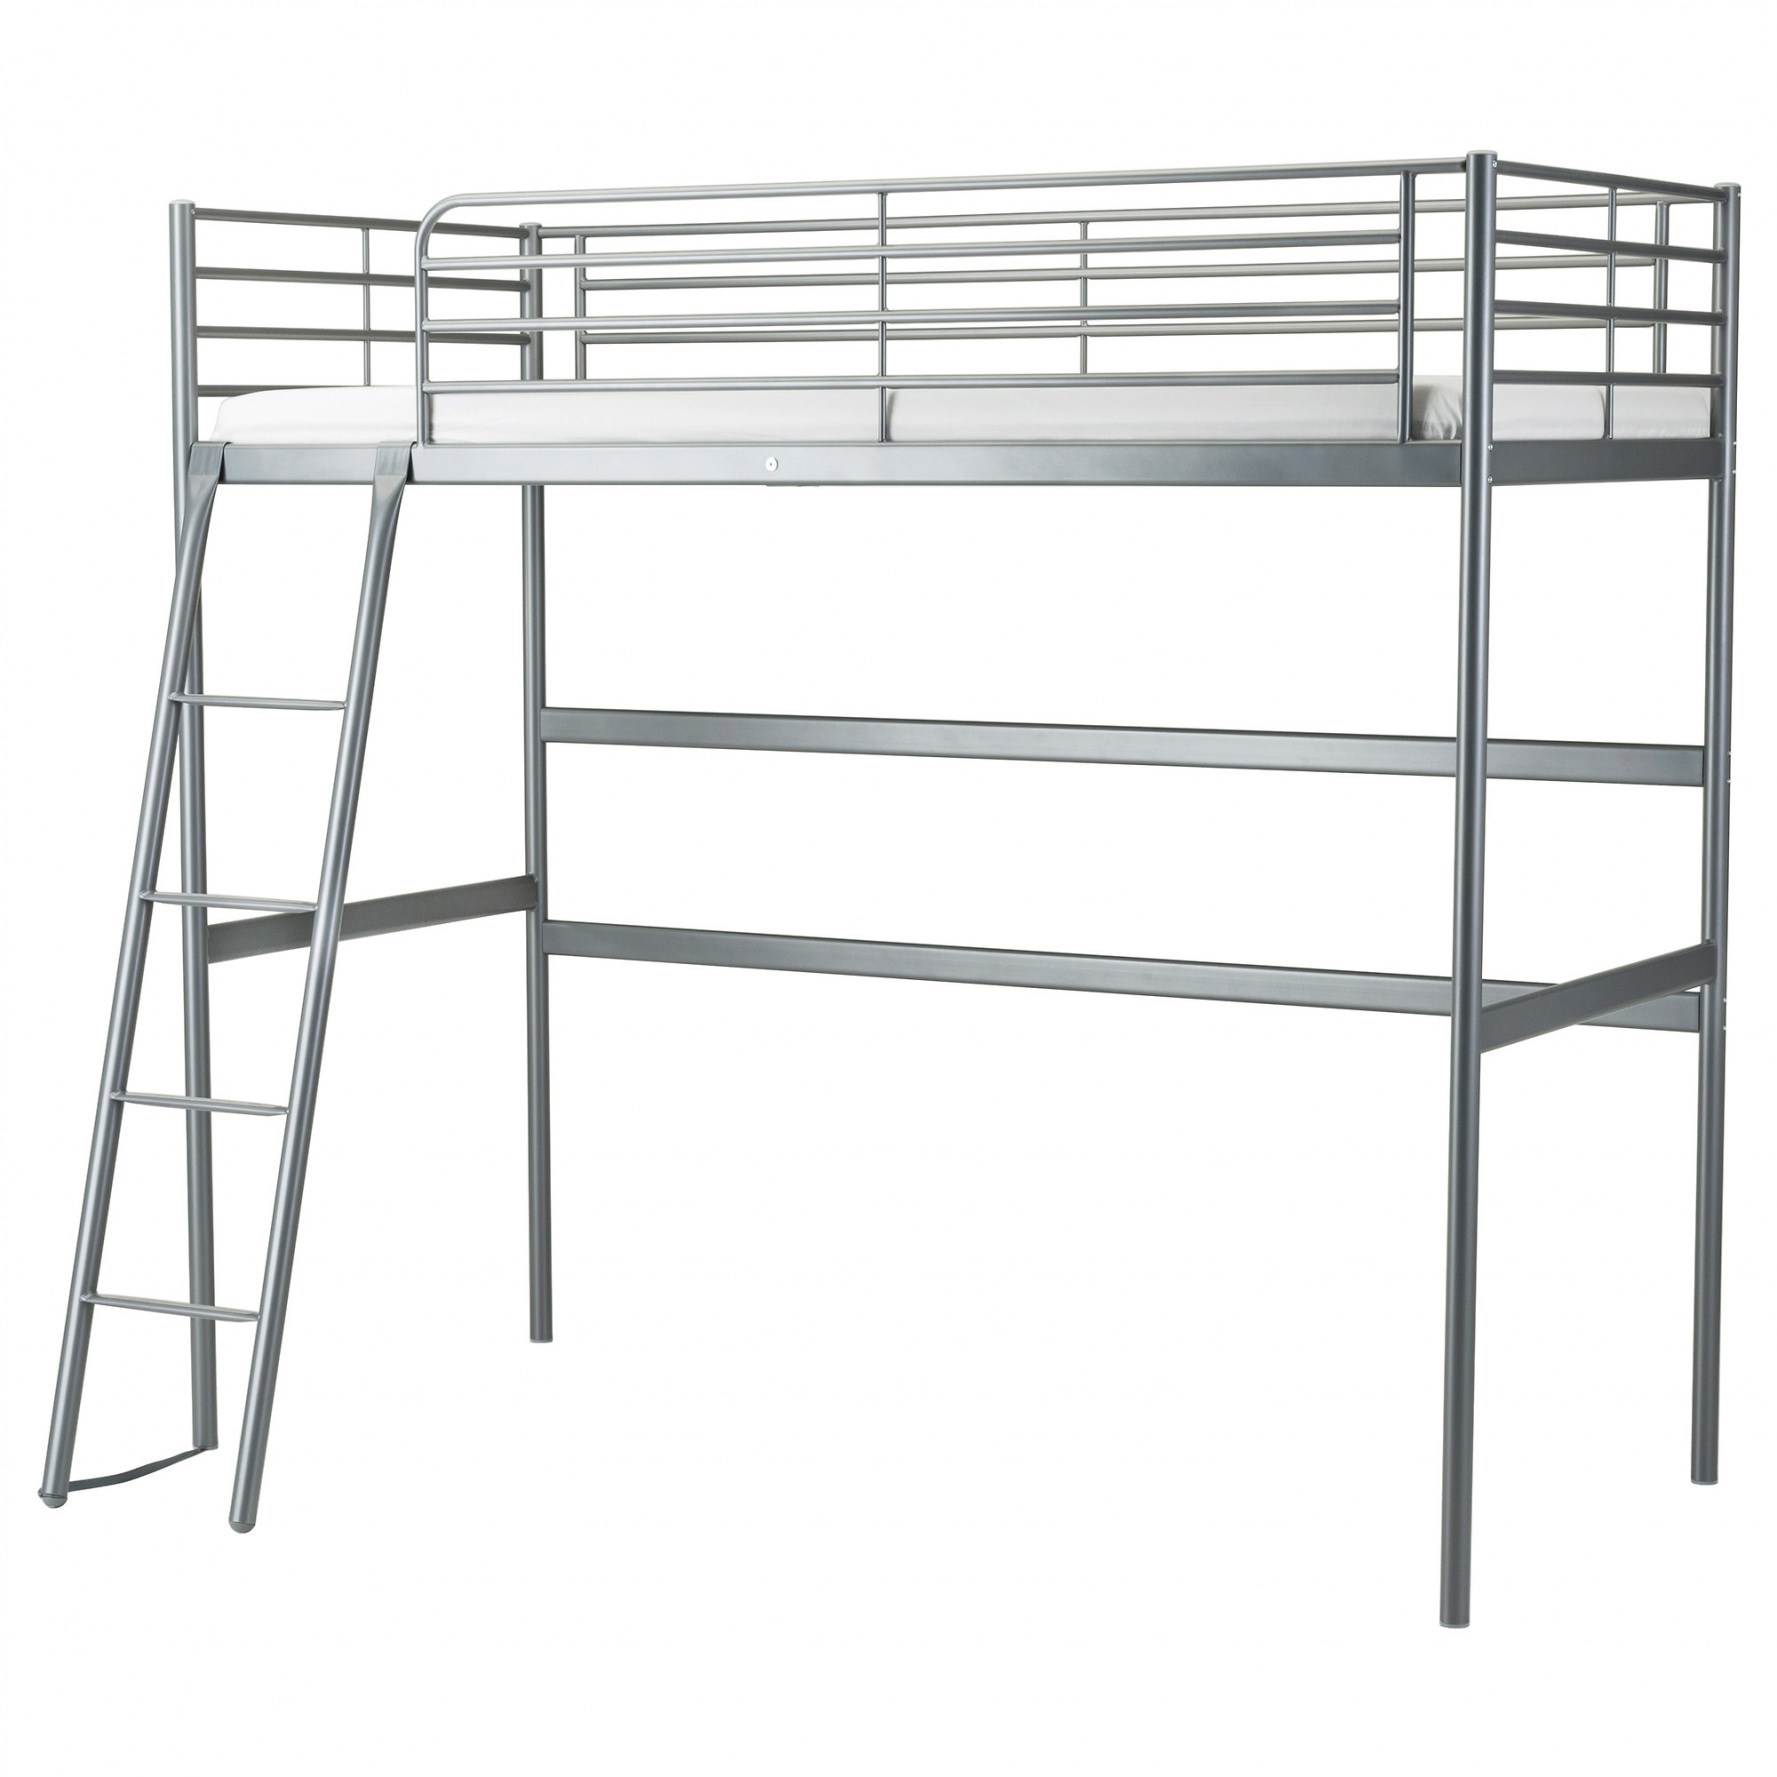 Amazing Single Bunk Bed Dimensions - Interior Design Small Bedroom inside Inspirational Small Bedroom Dimensions